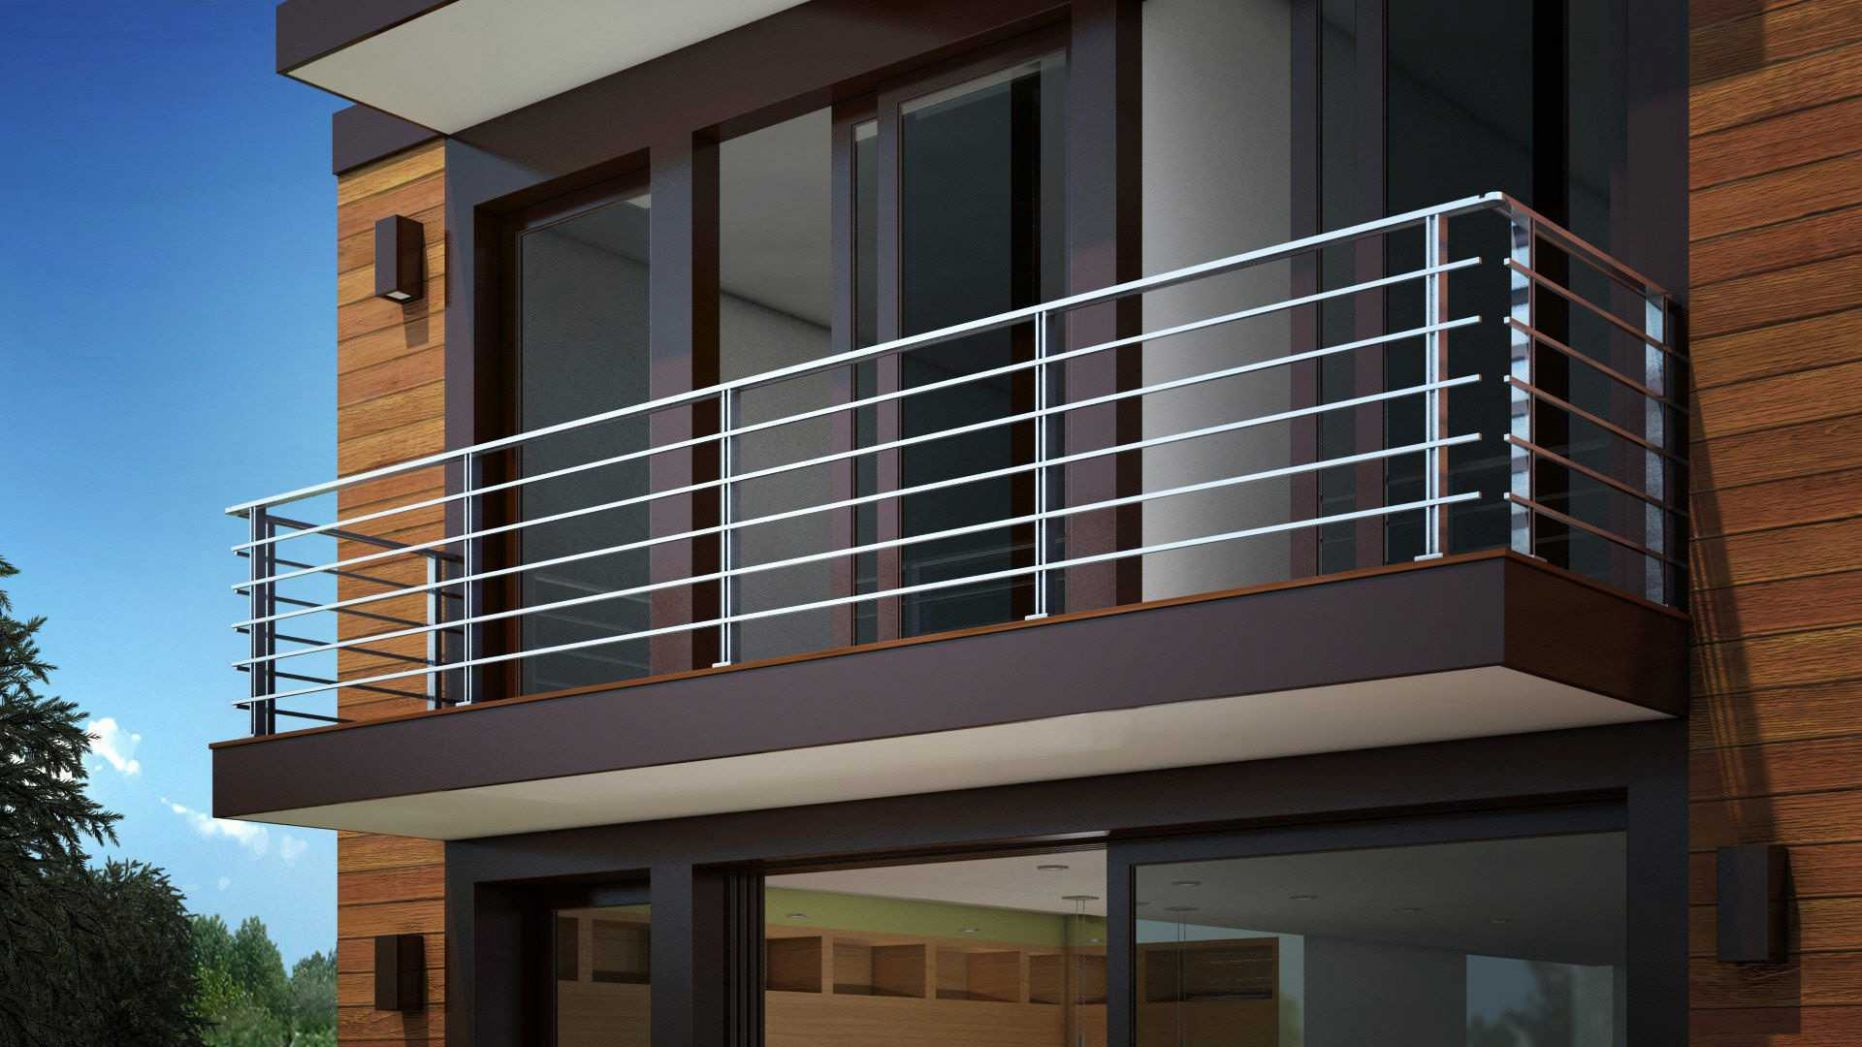 Balcony Railing Ideas Model 8 Cozy Decorating Home Elements And ..